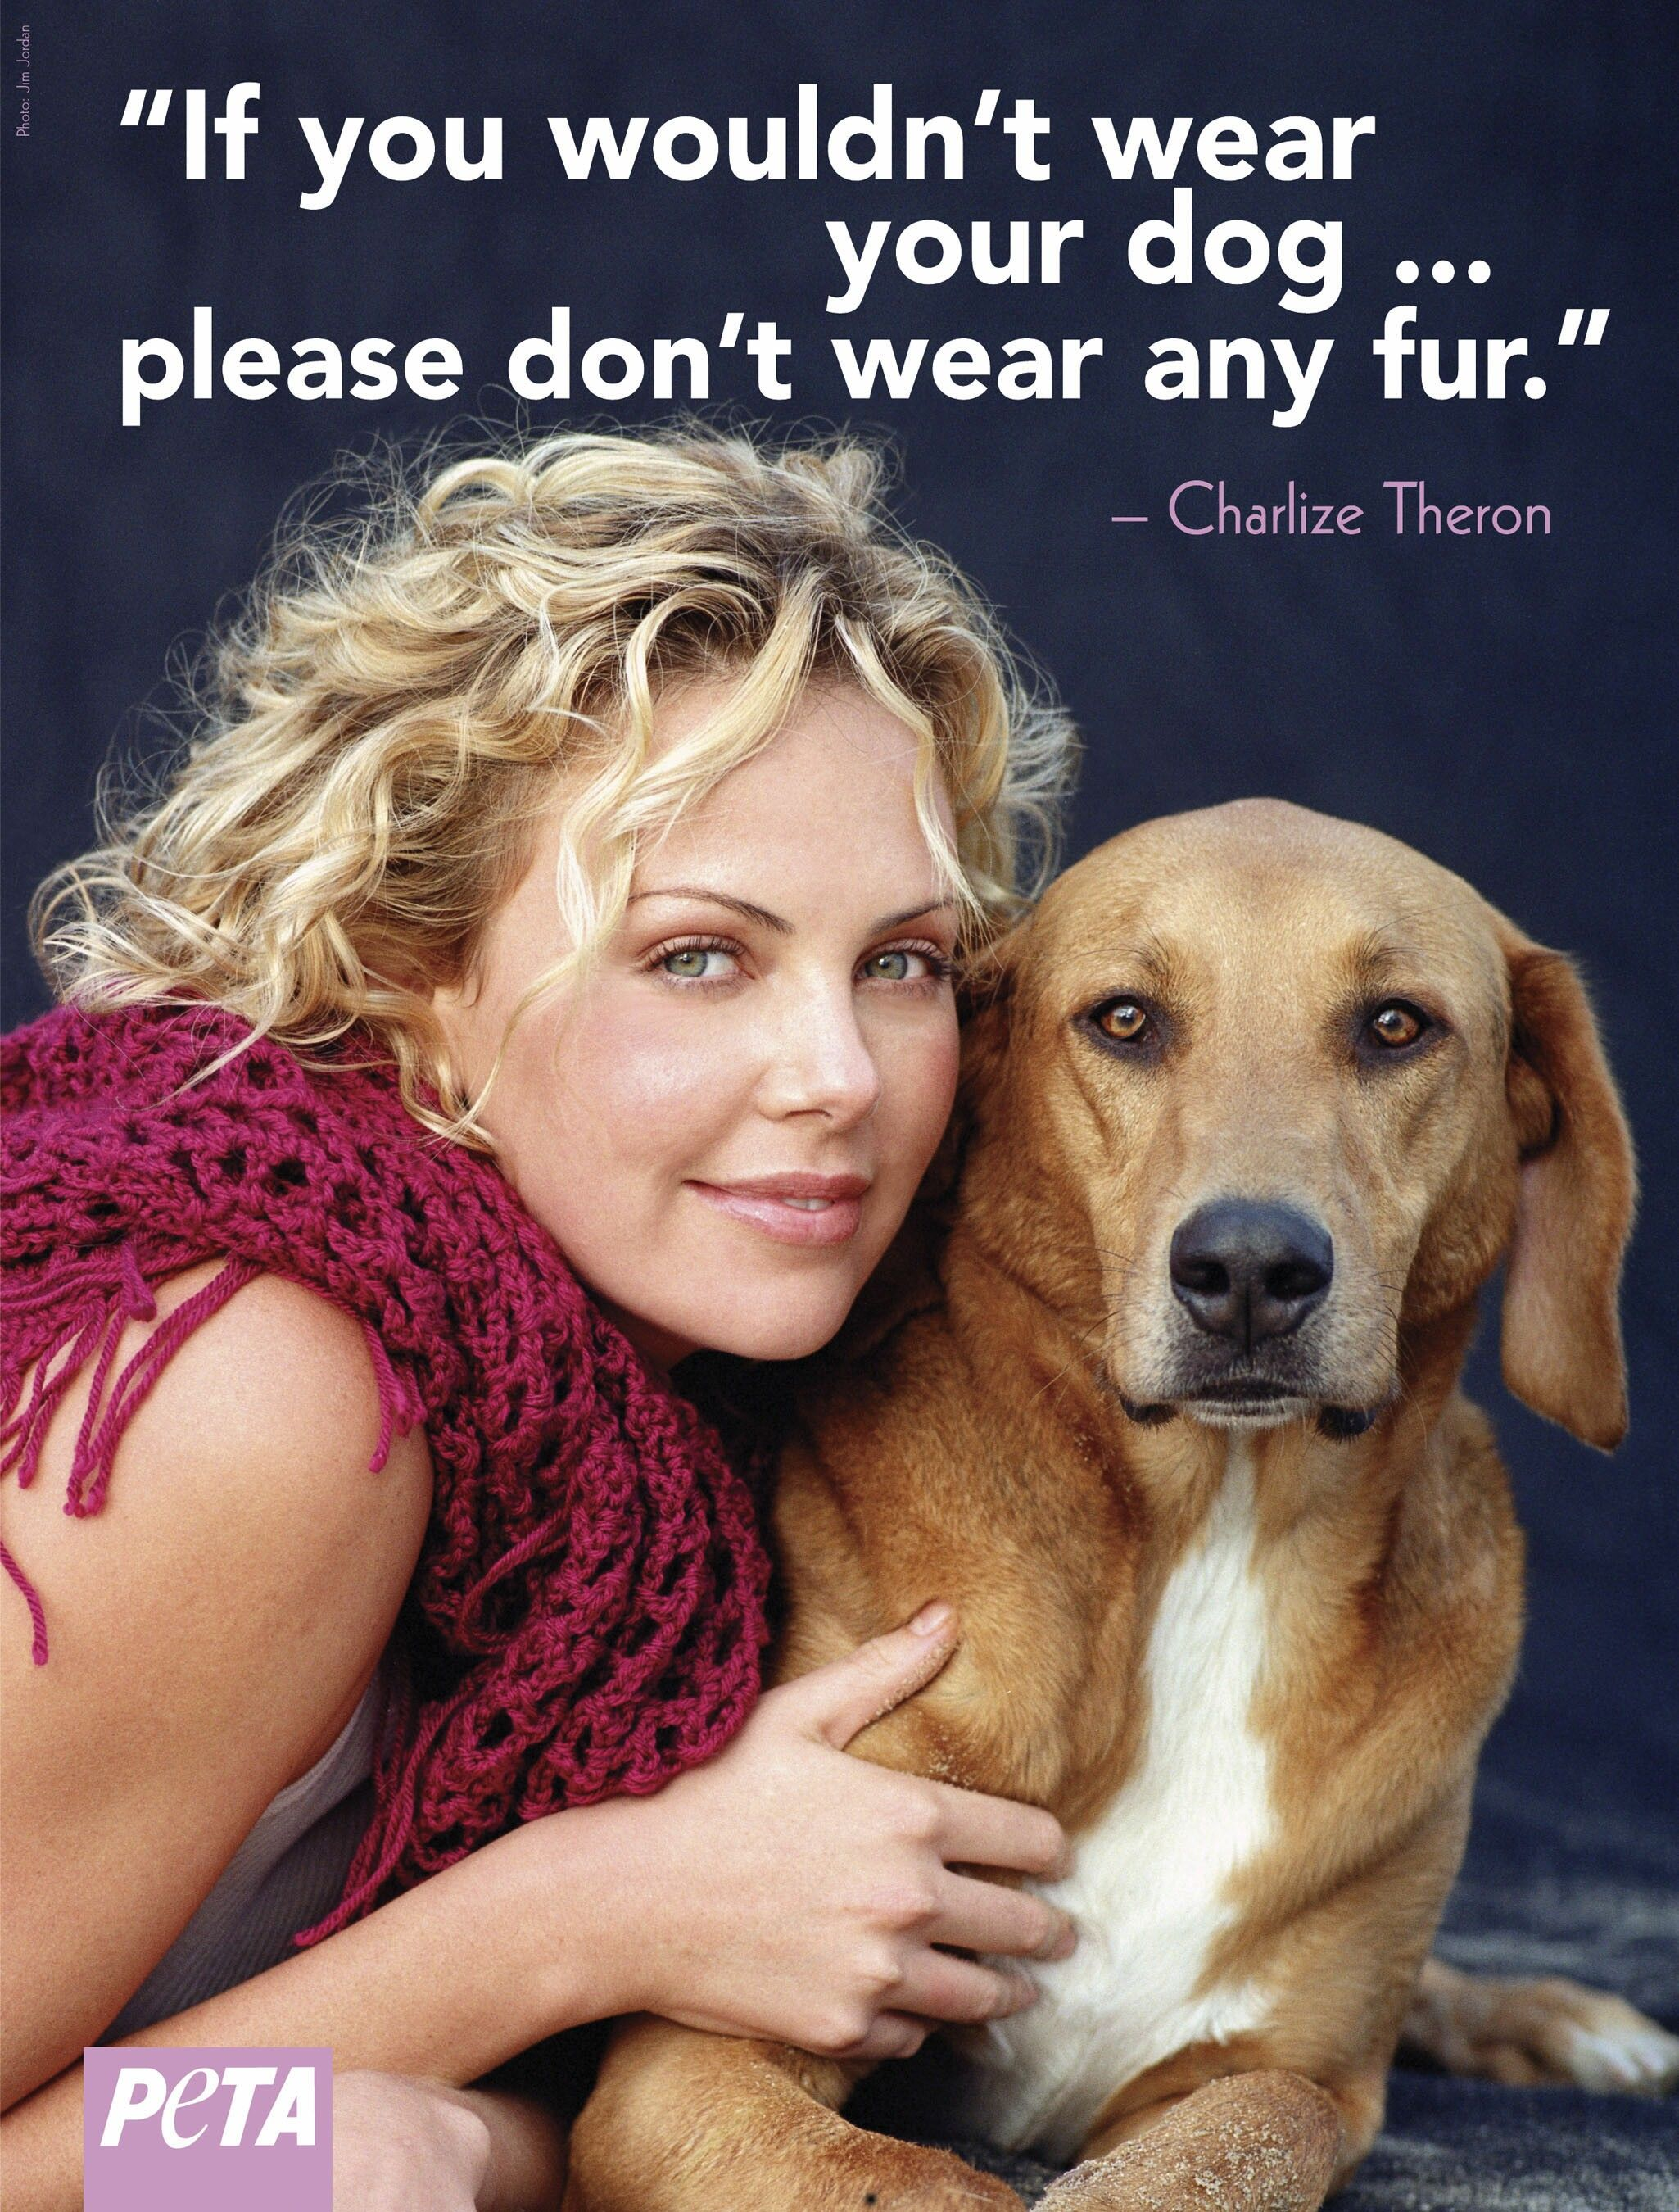 Charlize Theron for Peta - Dog, animal rights, animal compassion! Annette Caroline | Stop The ...